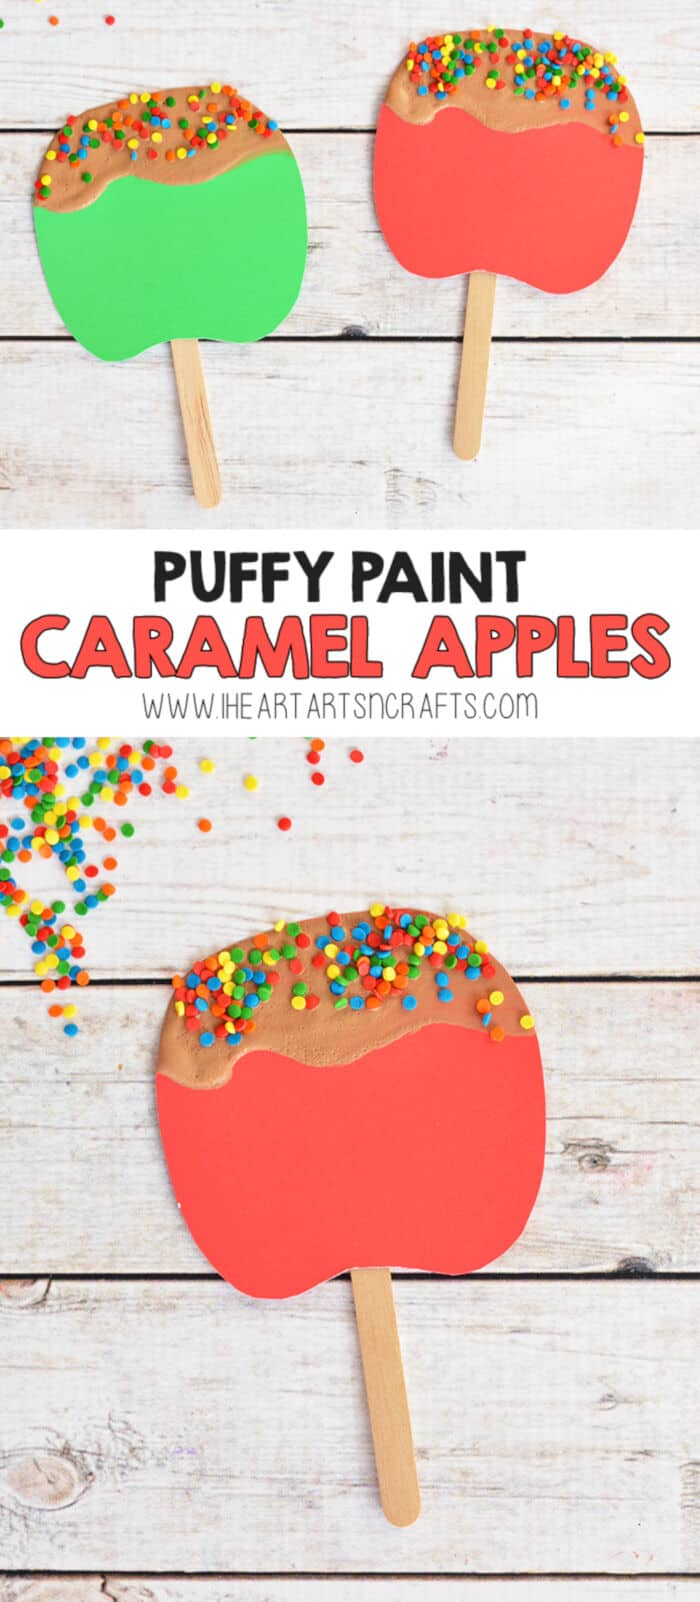 Puffy Paint Caramel Apples by I Heart Arts n Crafts